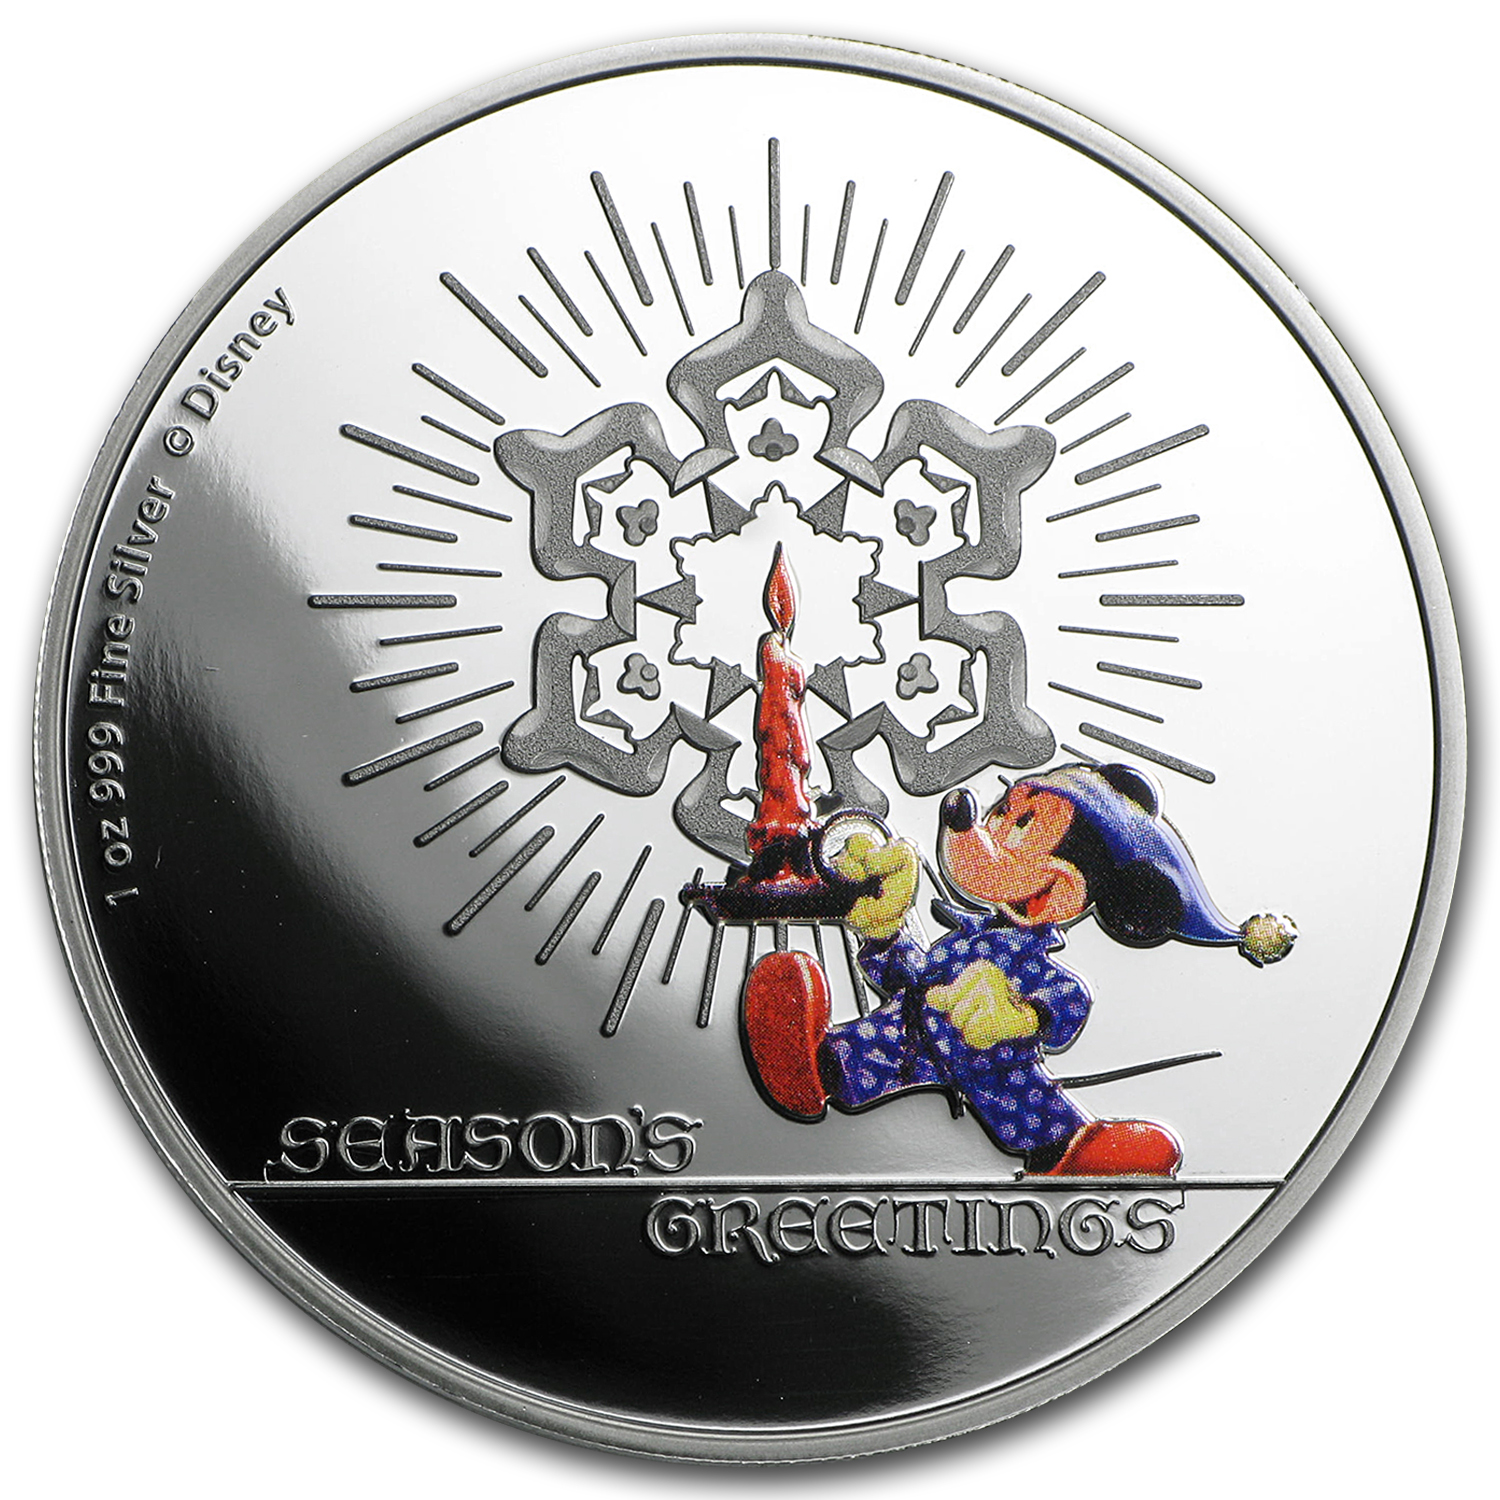 2016 Niue 1 oz Silver $1 Disney Season's Greetings Proof